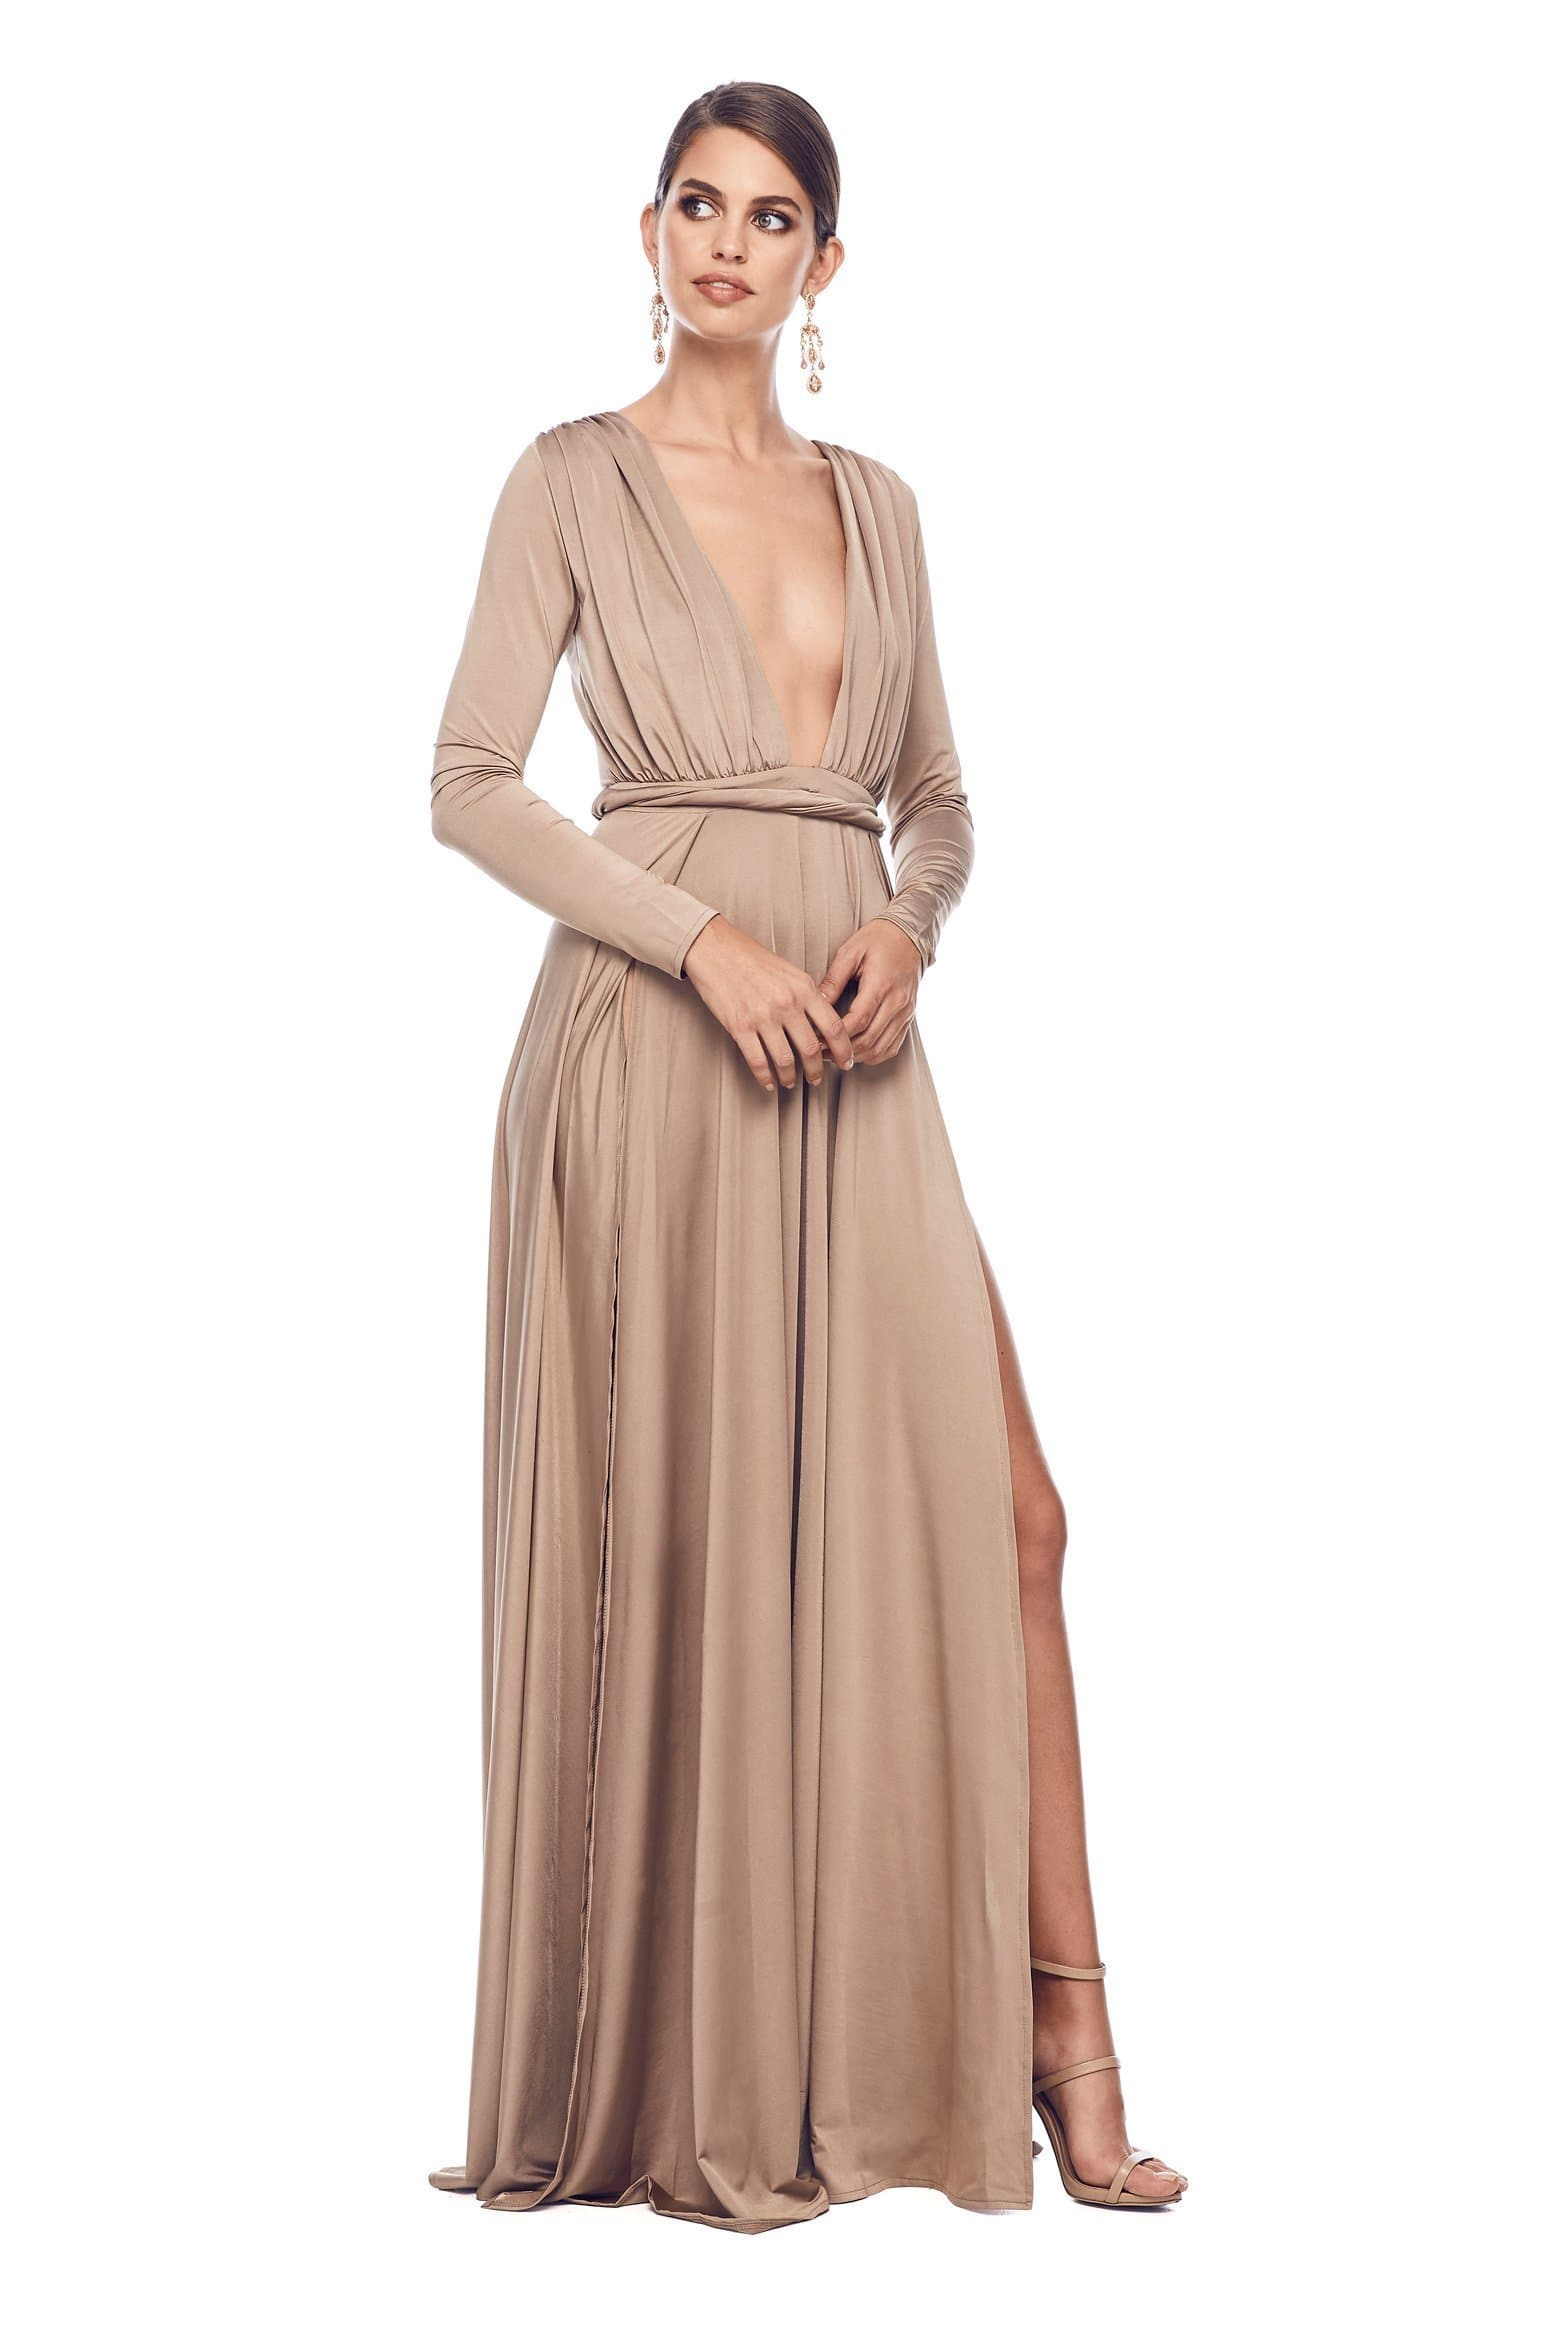 Sahara - Bronze Jersey Gown with Long Sleeves & Side Slits